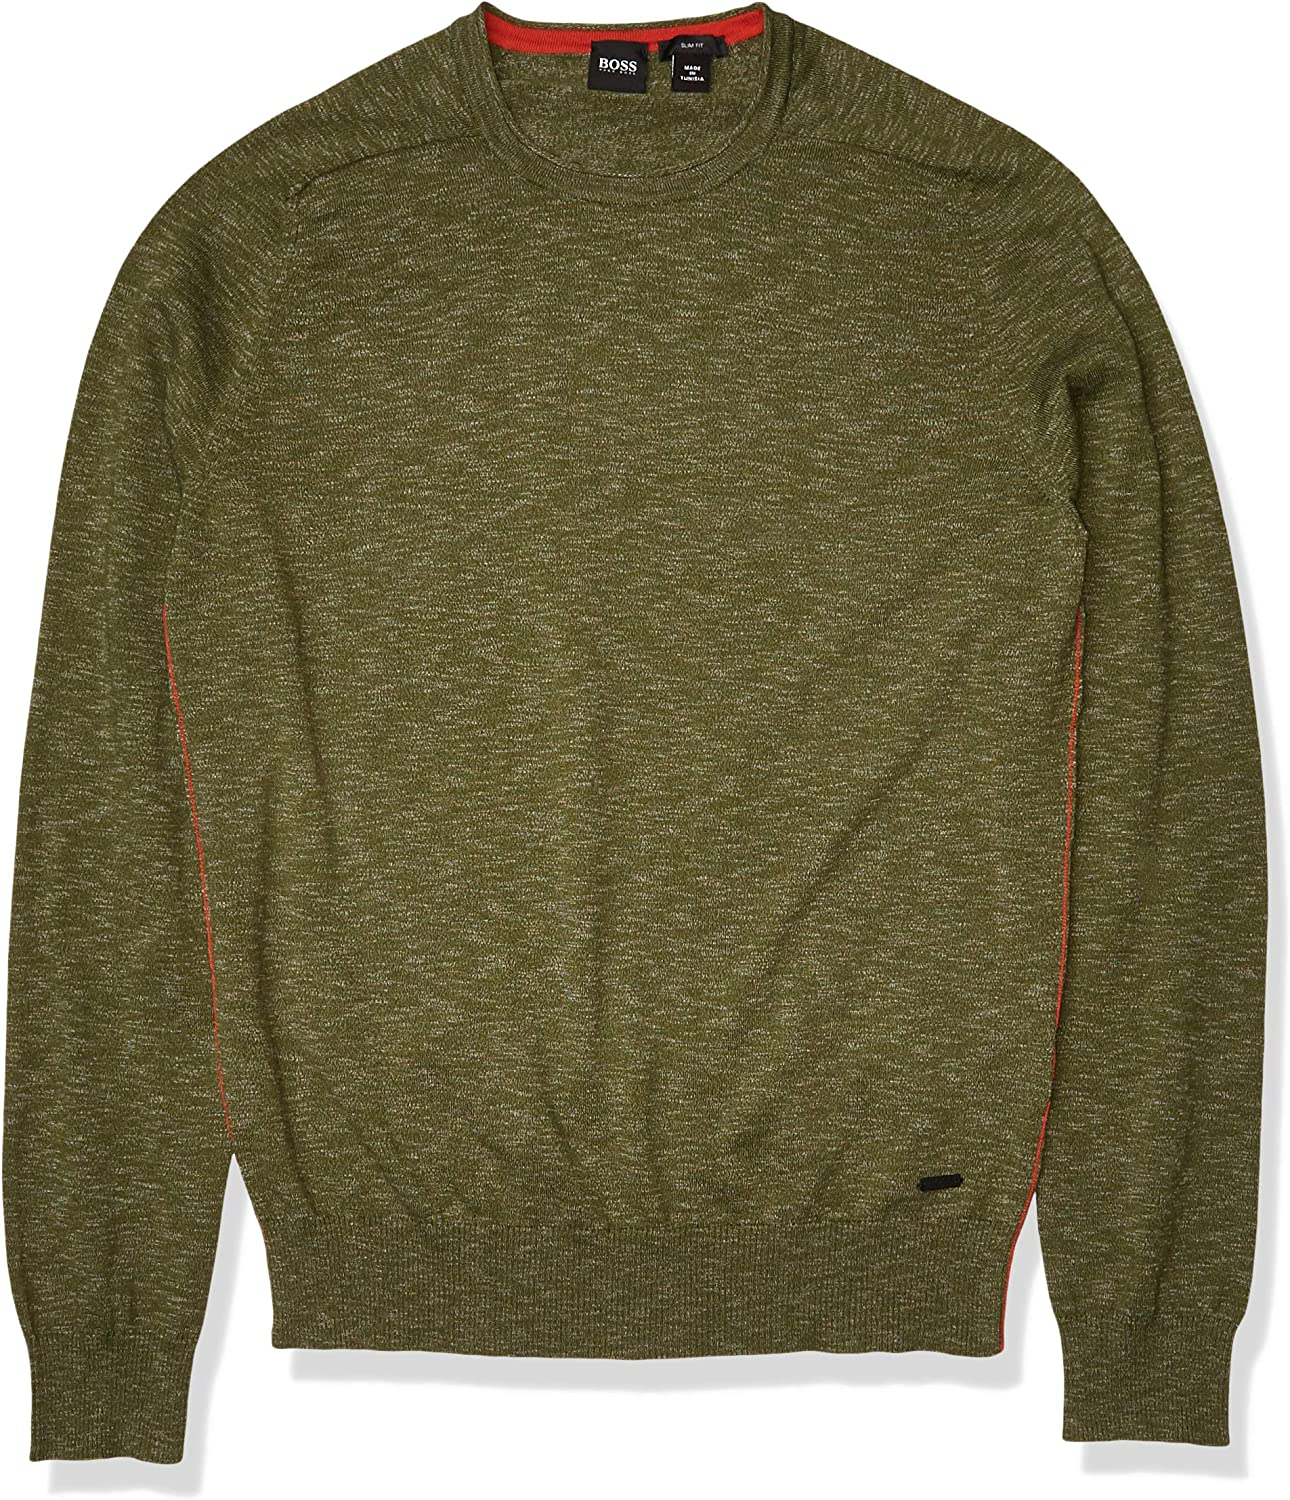 Outlet ☆ Free Shipping Hugo Boss Men's Sweater Casual security